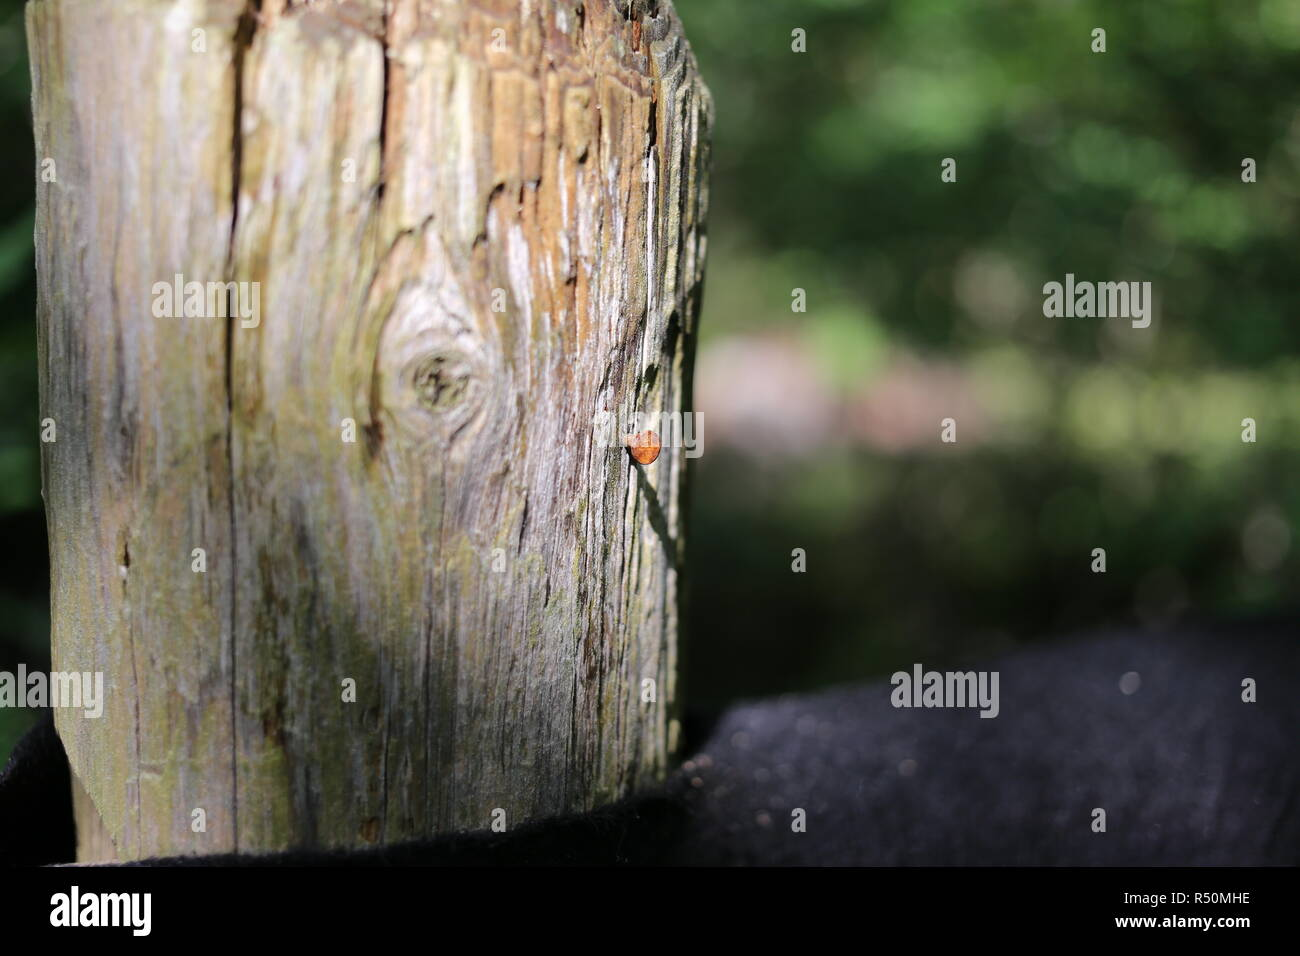 Closeup of wooden fence post. - Stock Image